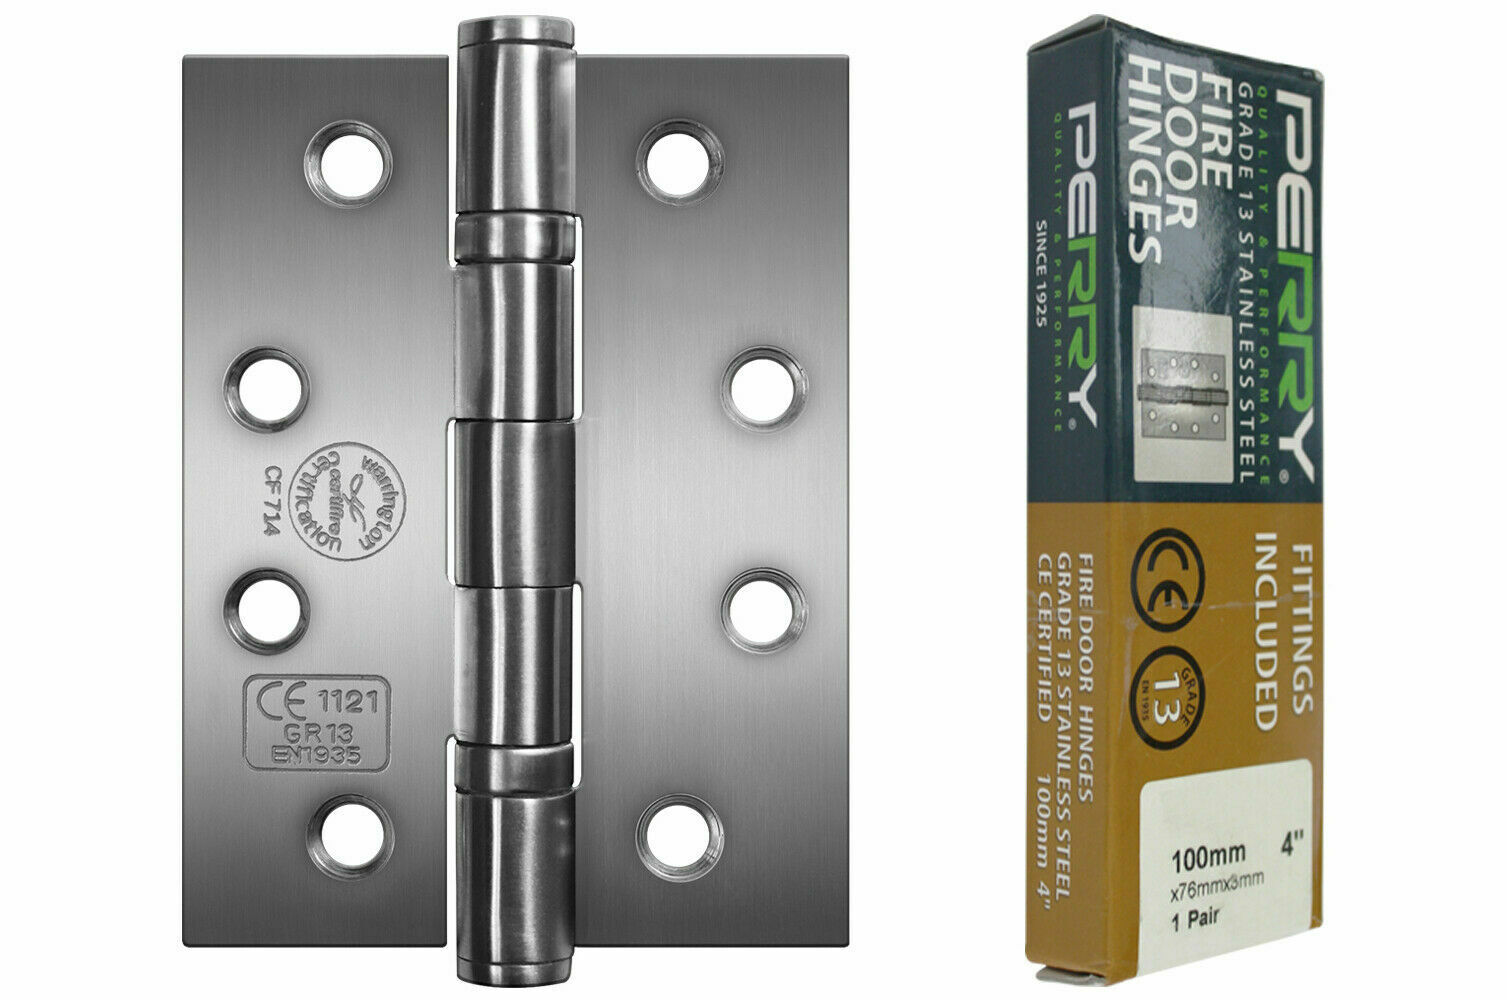 PERRY SATIN 100mm Stainless Steel Ball Bearing Fire Door Hinges Grade 11 D11